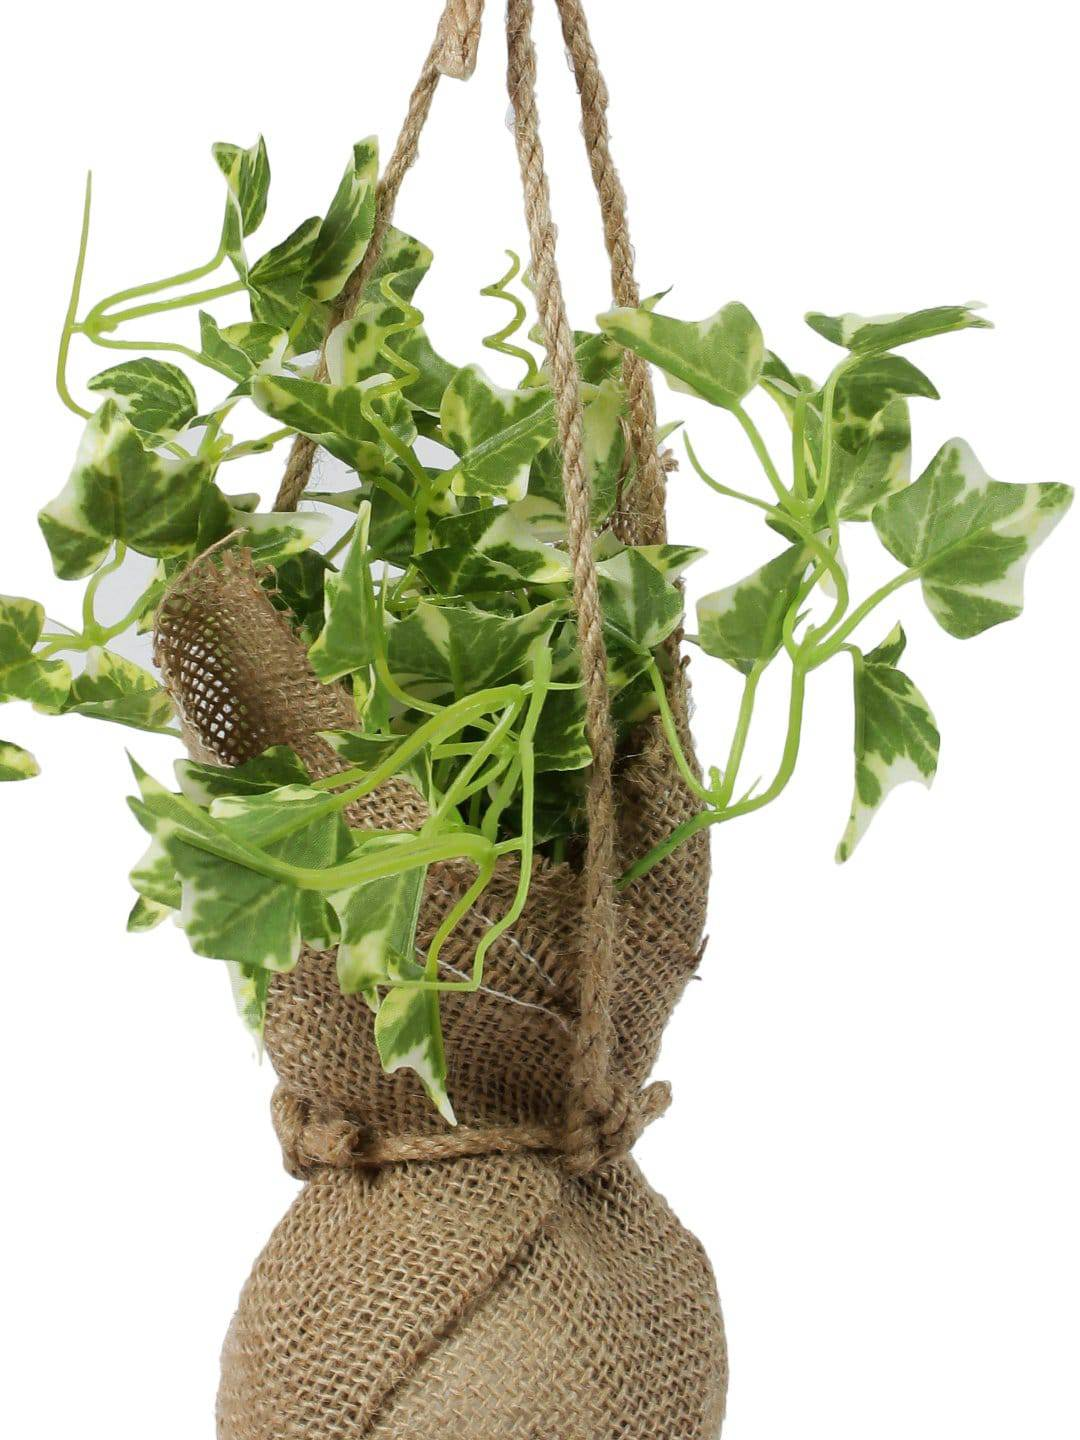 Pollination Beautiful Artificial White Ivy Creeper Bonsai with Jute Bag for Balcony (Pack of 1, 14 Inch) - Artificial Flowers & Plants - PolliNation